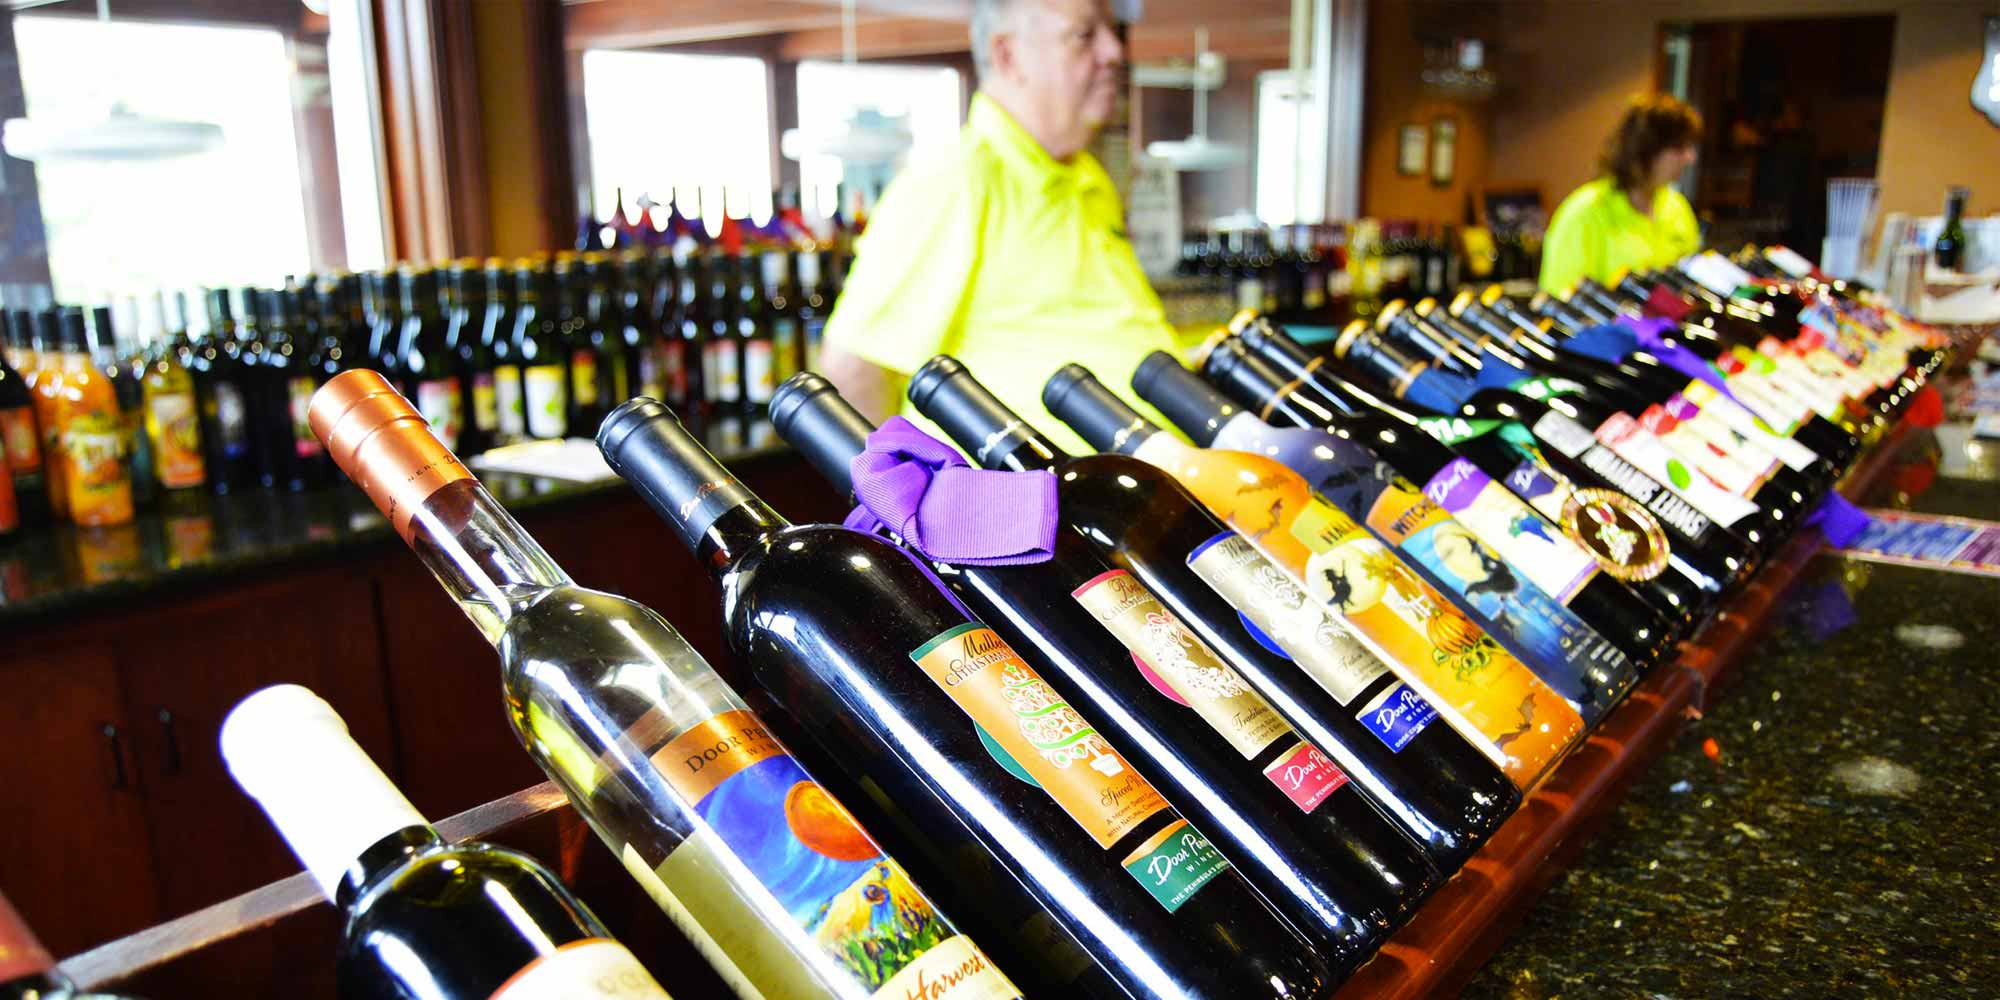 THE GOLDEN RULES TO CHOOSE WINE AT THE SUPERMARKET, PART ONE